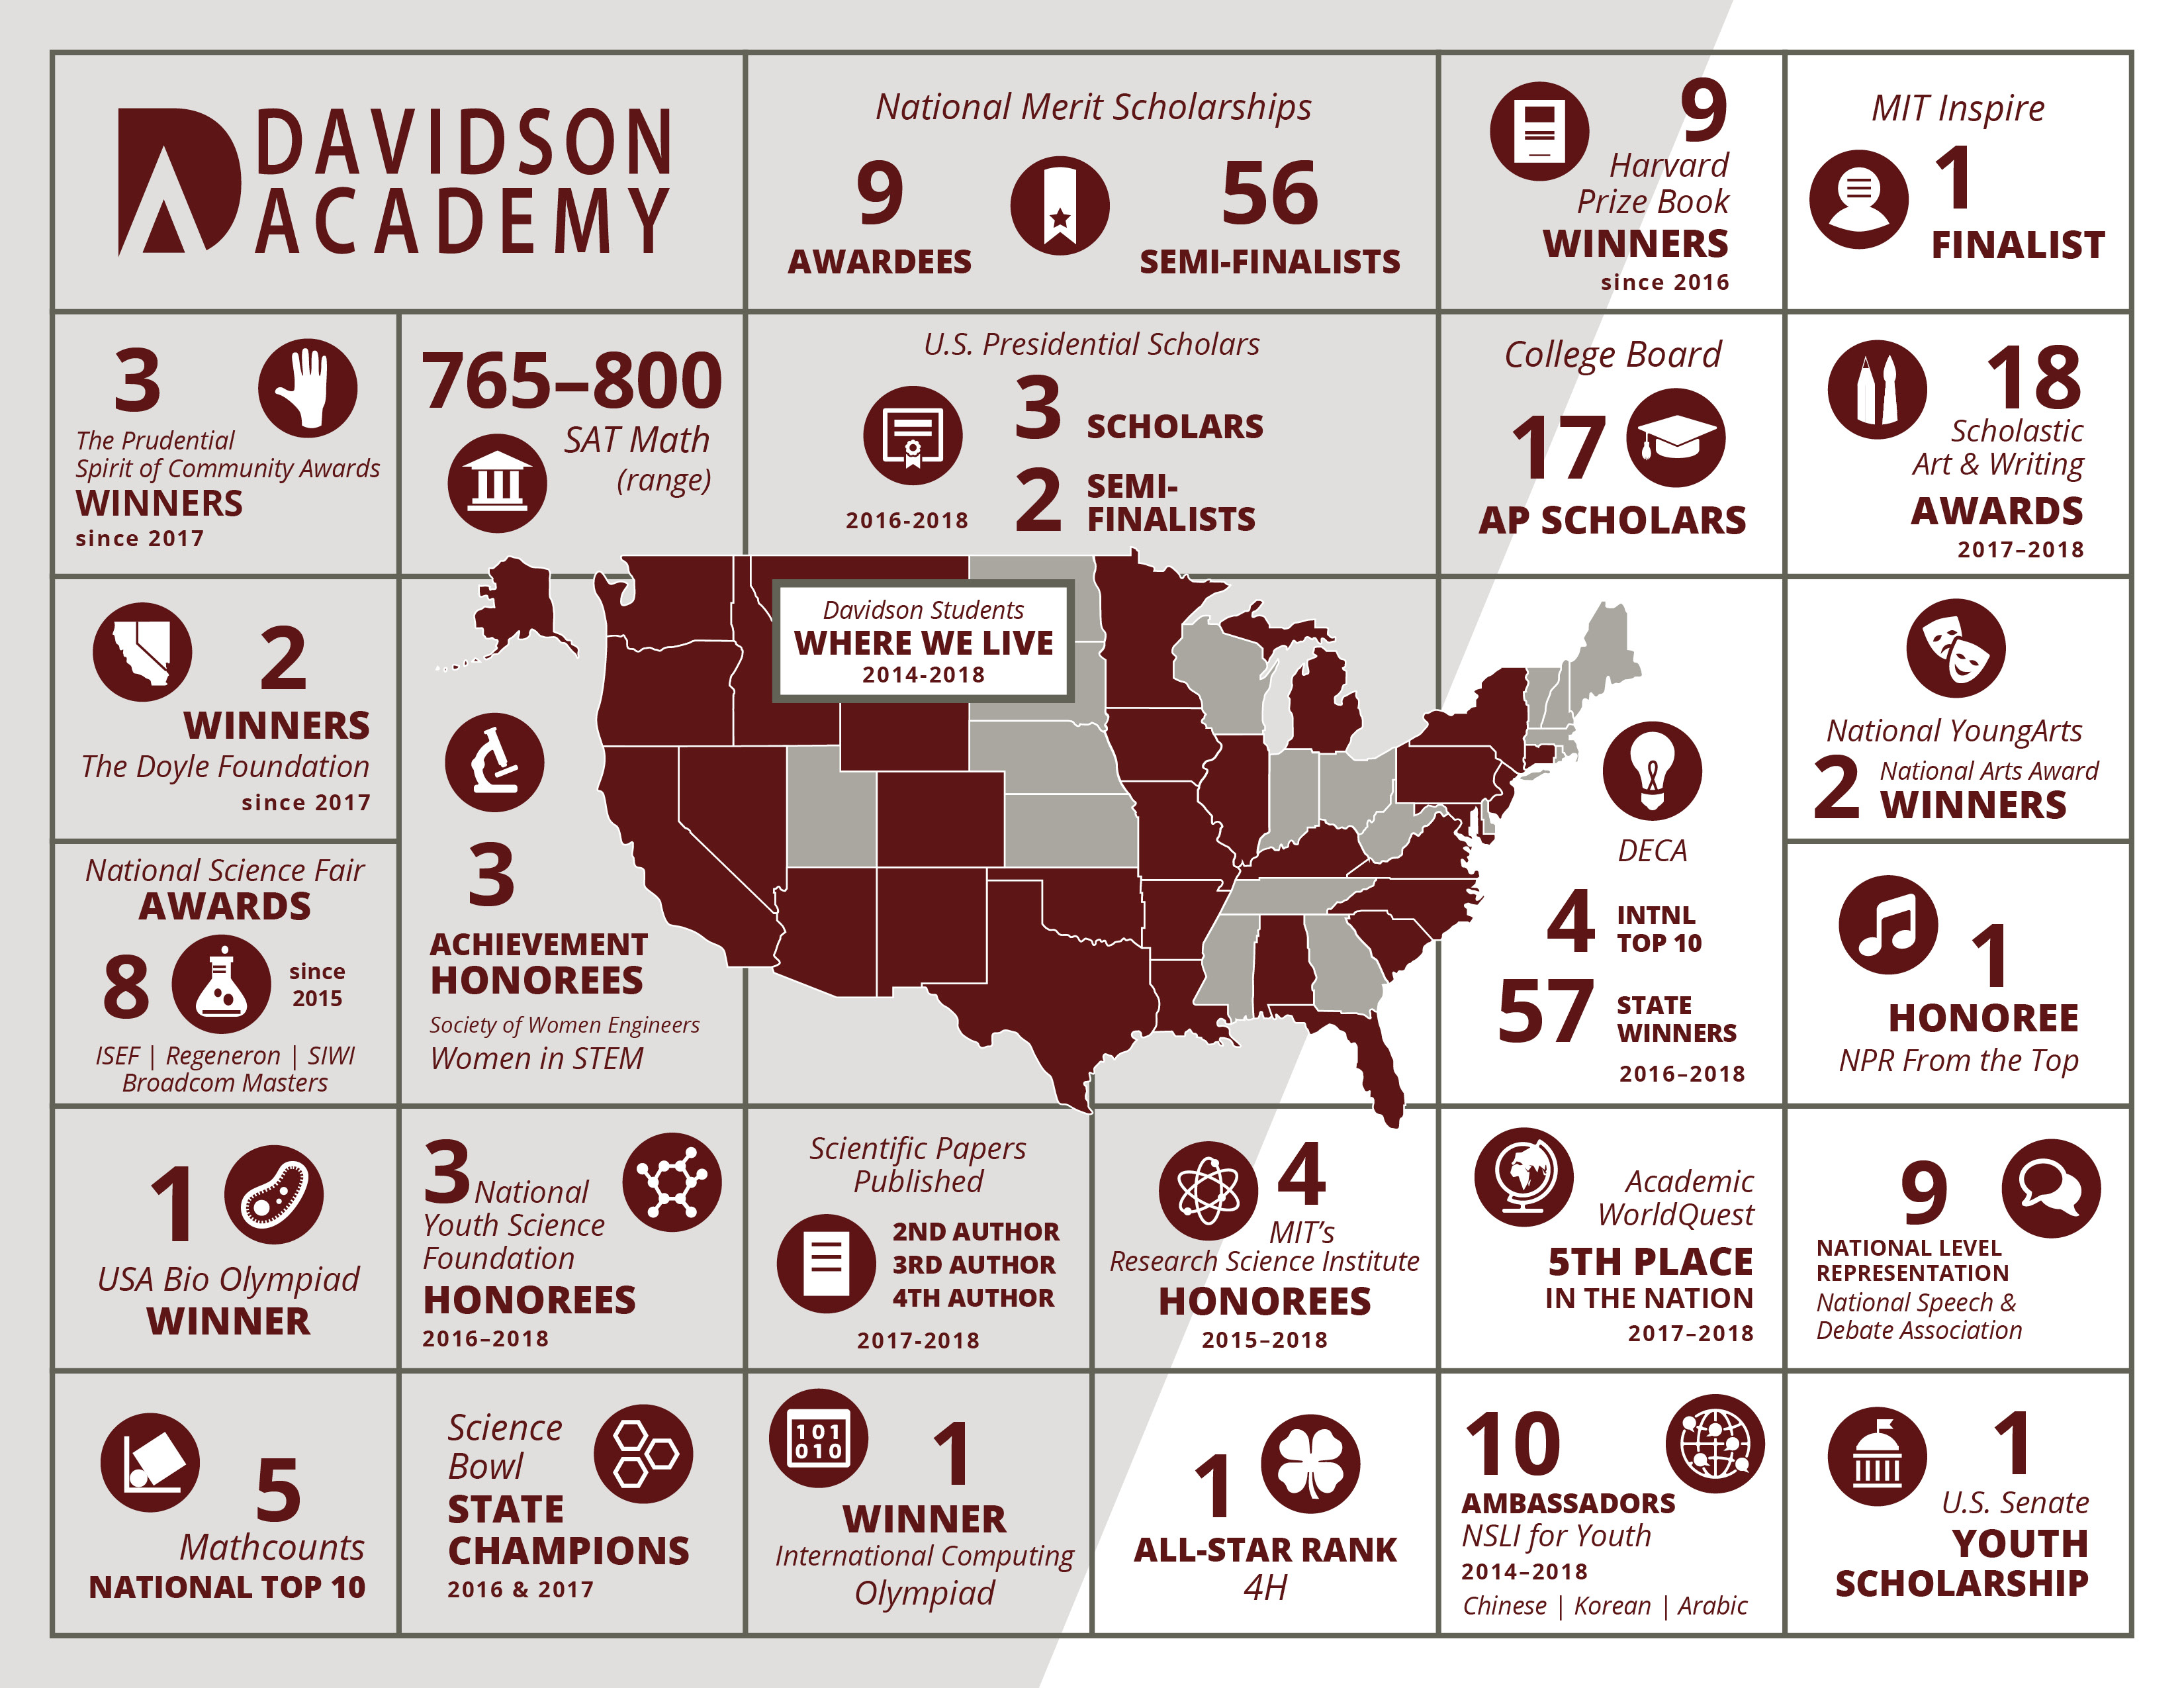 An Infographic about the Davidson Academy